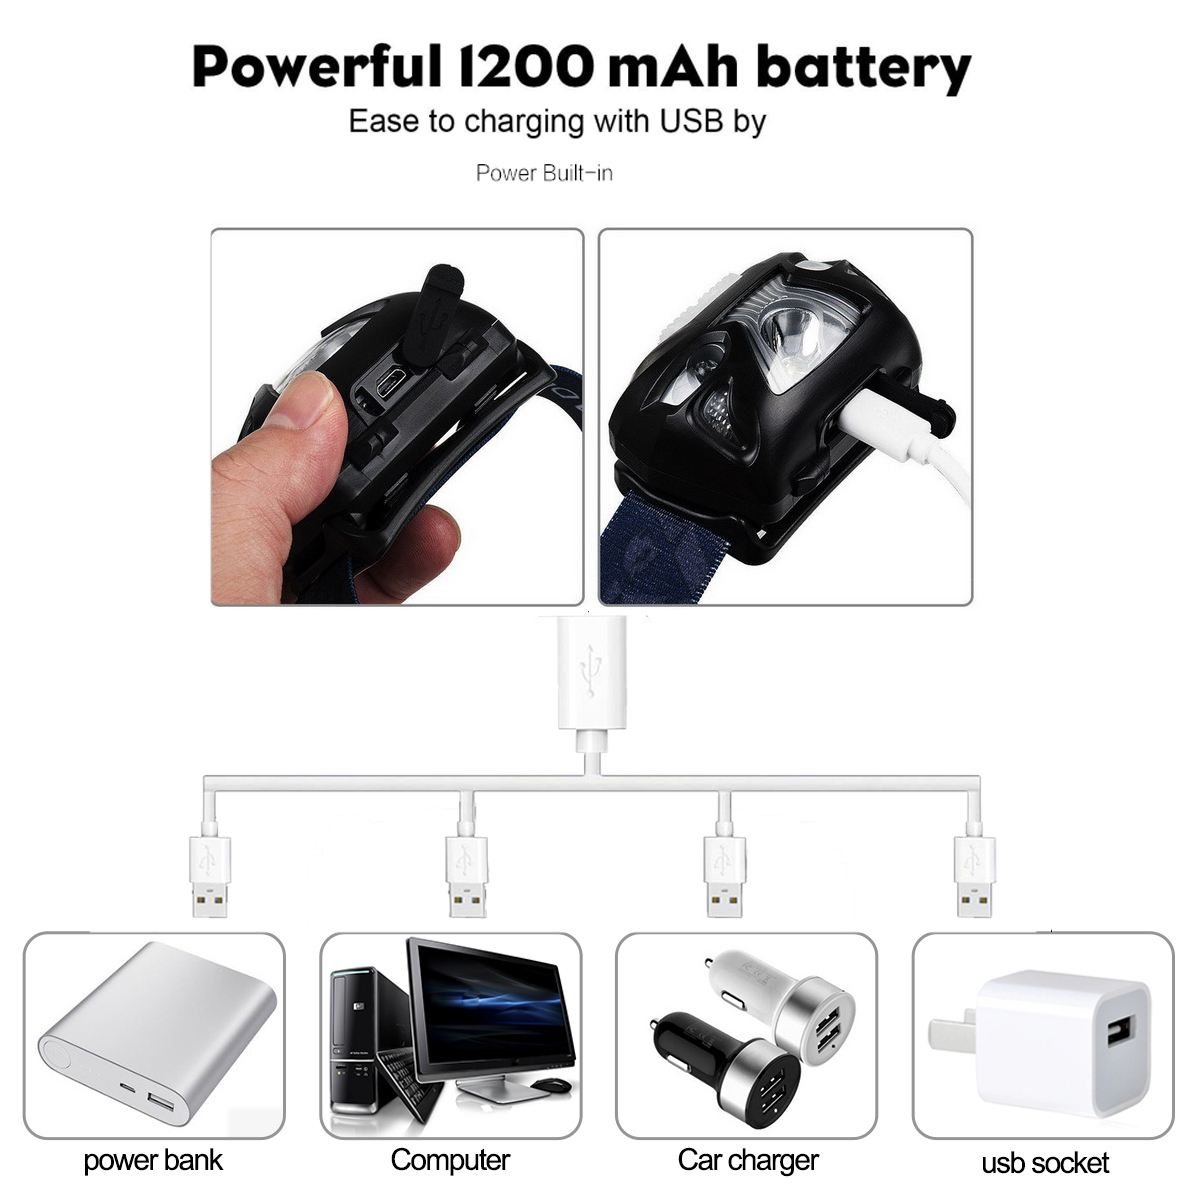 10000Lm Powerfull Headlamp Rechargeable LED Headlight Body Motion Sensor Head Flashlight Camping Torch Light Lamp With USB 5